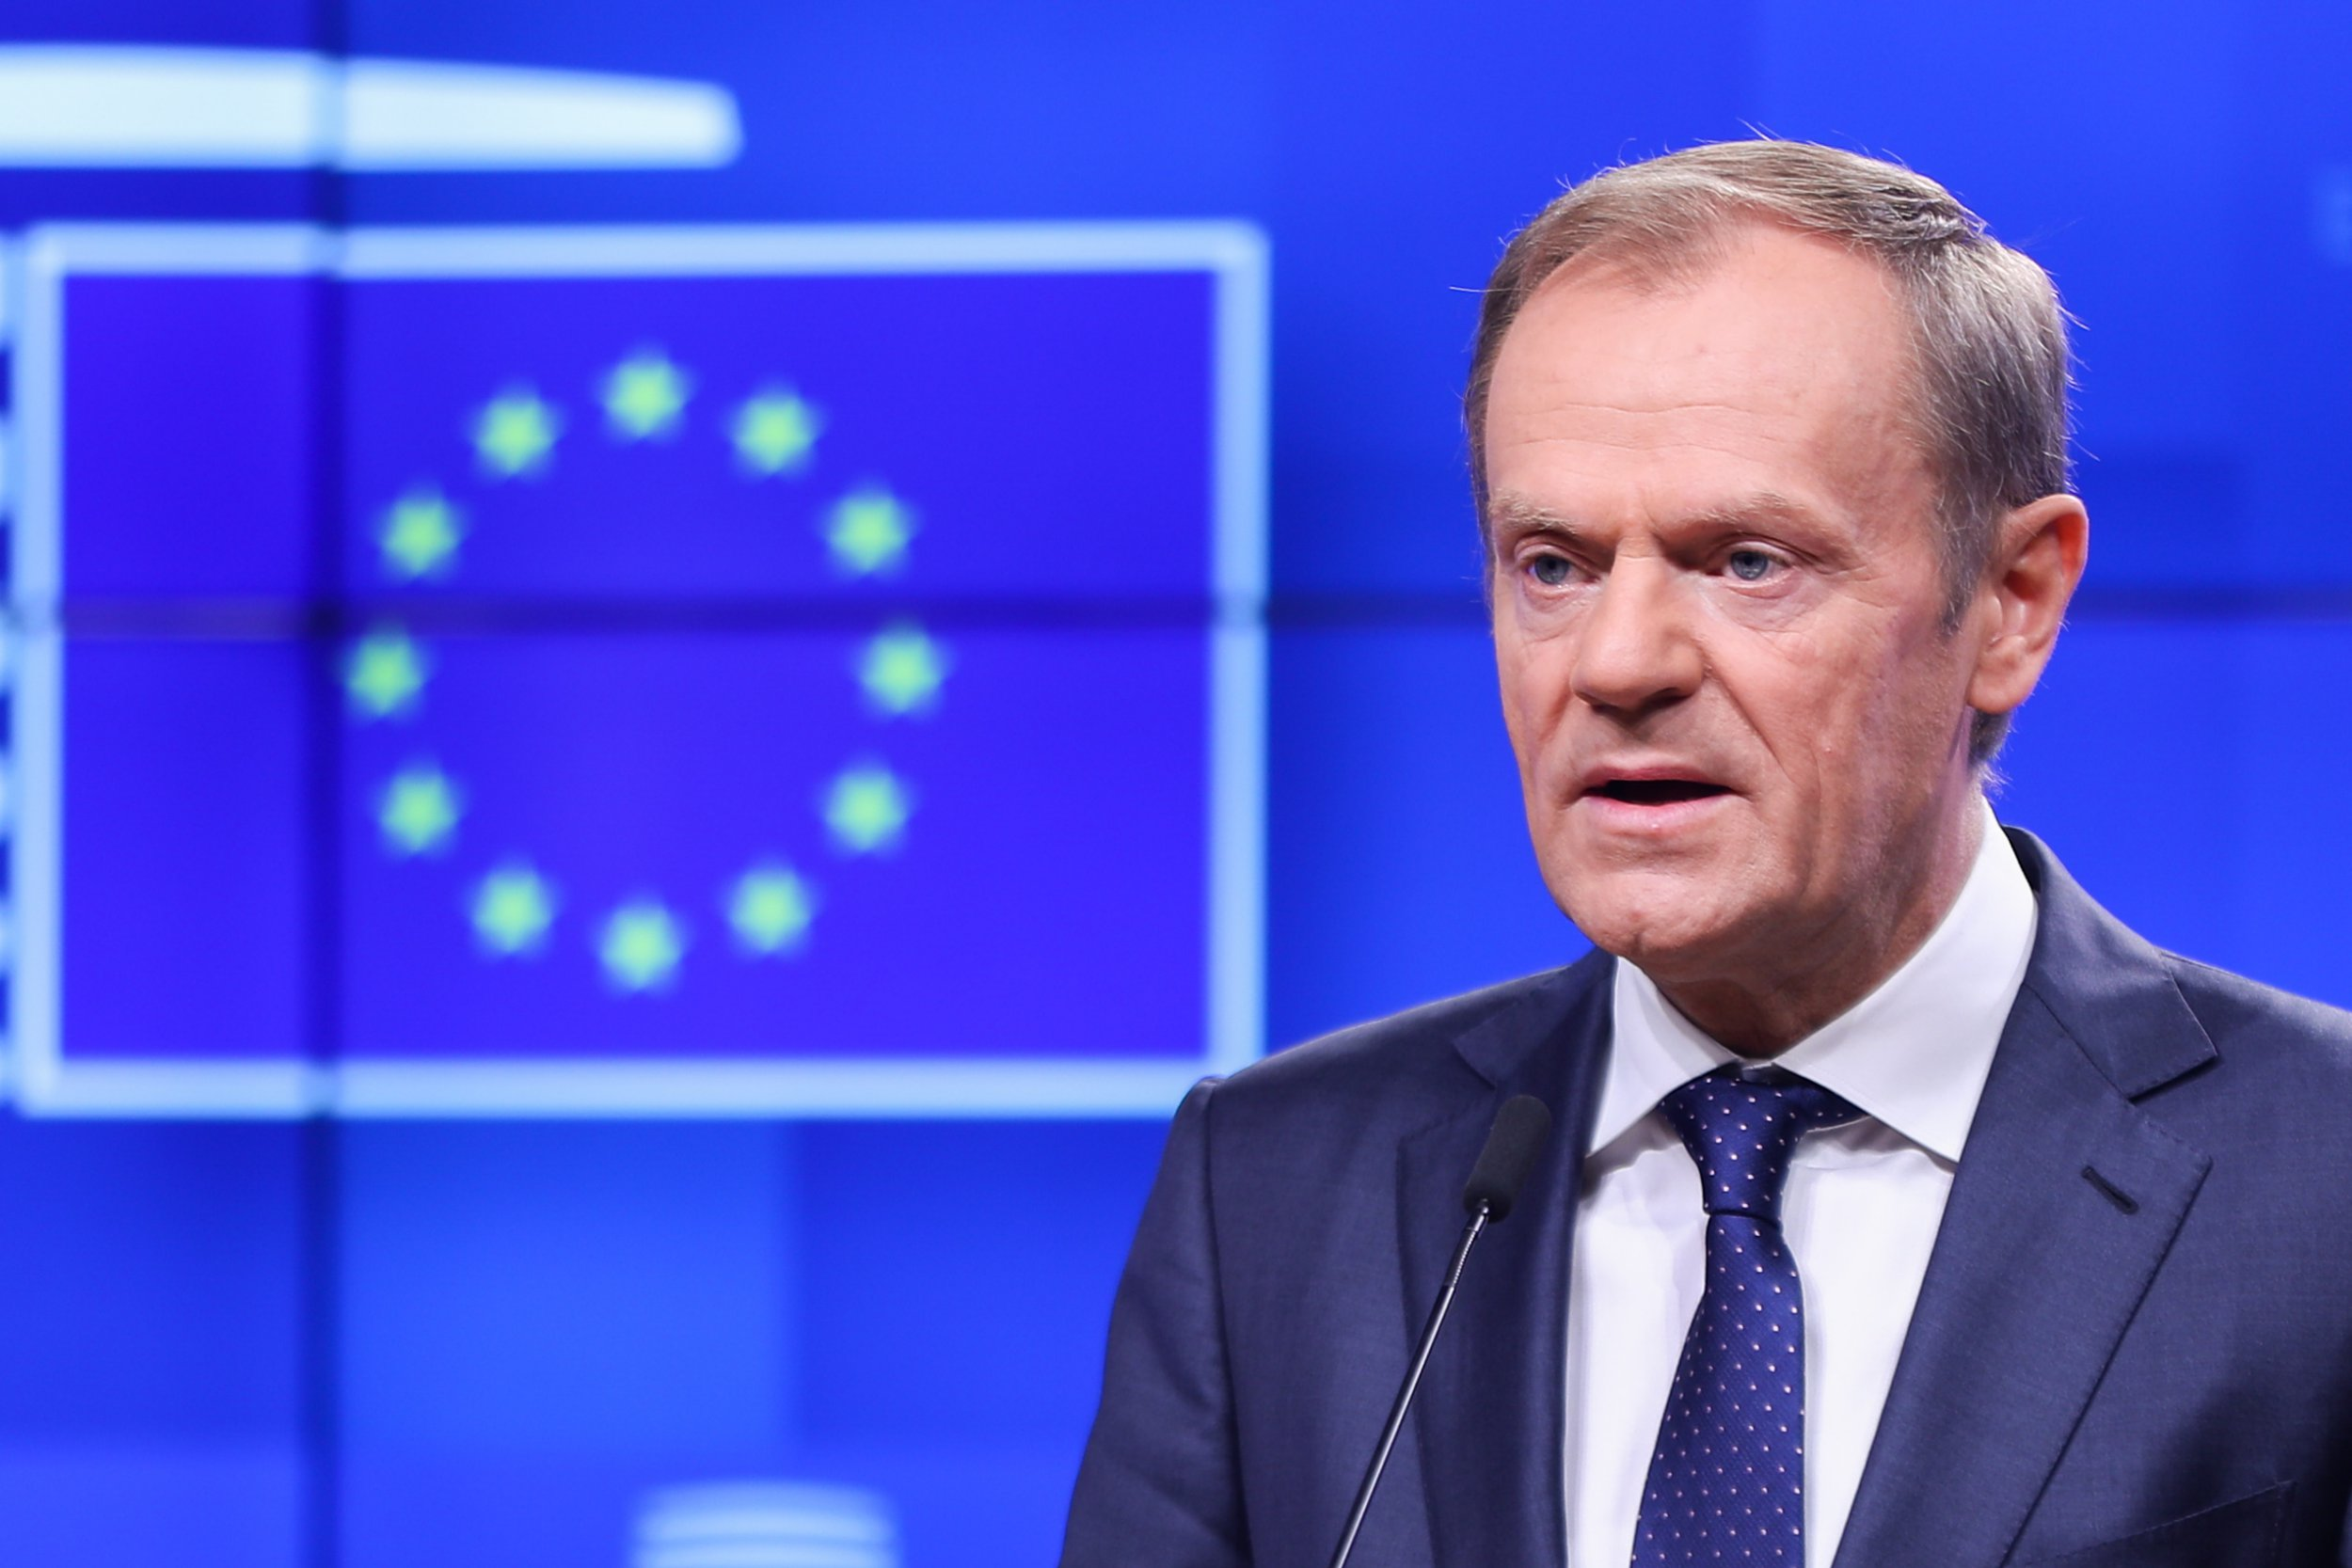 """Mandatory Credit: Photo by Xinhua/REX/Shutterstock (9981996c) European Council President Donald Tusk speaks at a press conference European Council meeting, Brussels, Belgium - 15 Nov 2018 A European Council meeting is expected on Nov. 25 in order to """"finalize and formalize the Brexit agreement,"""" European Council President Donald Tusk told reporters Thursday."""